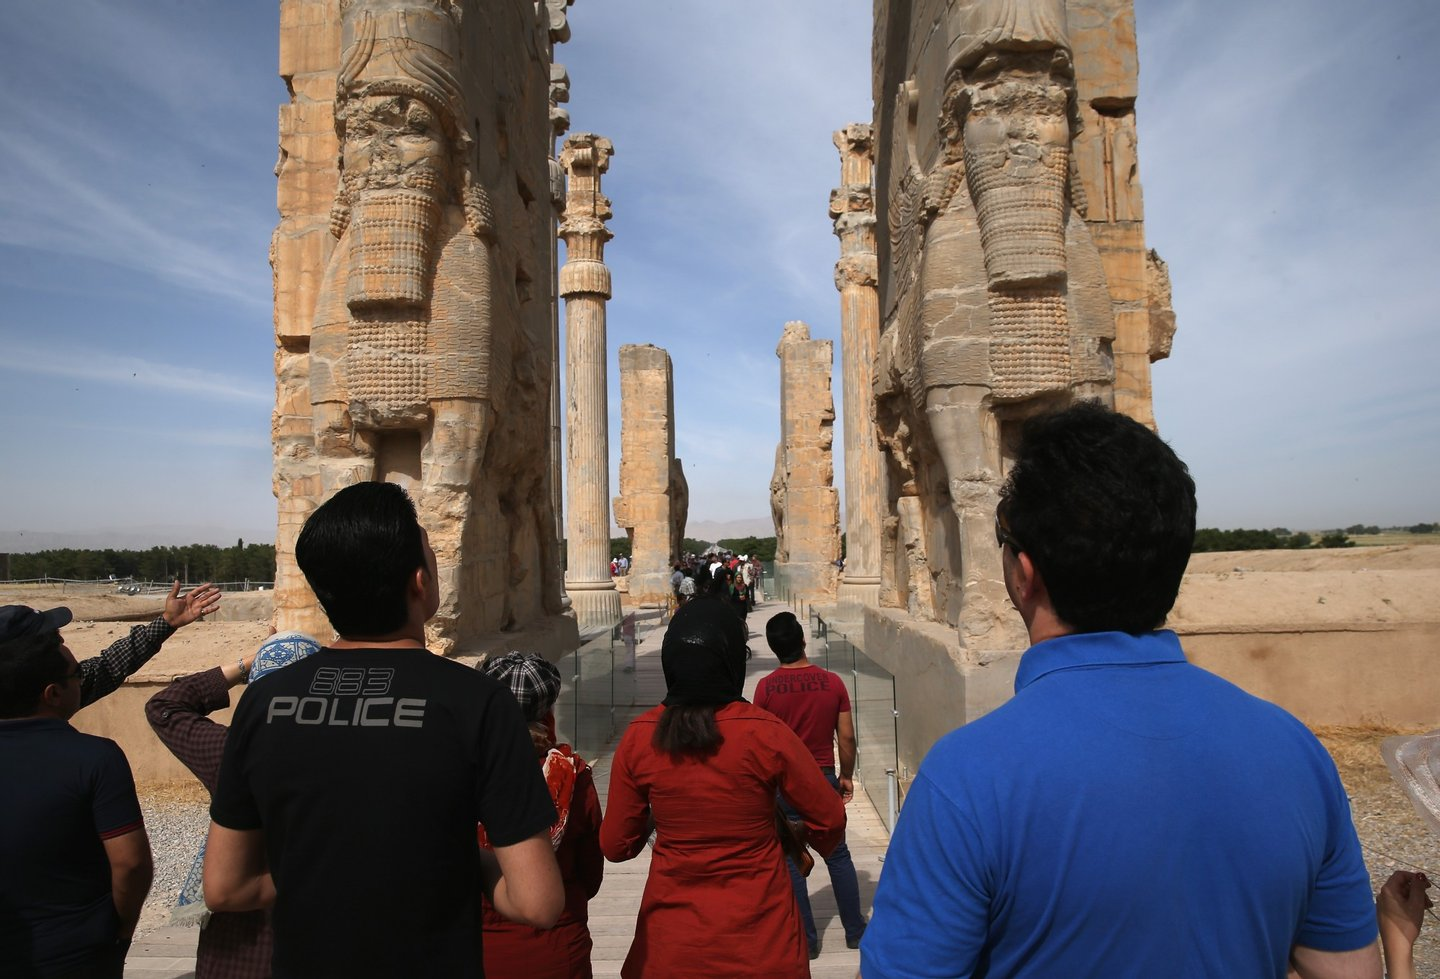 PERSEPOLIS, IRAN - MAY 30:  Tourists gaze upon the Gate of All Nations at the ancient Persepolis archeological site on May 30, 2014 in Persepolis, Iran. The ruins mark the site of the 6th century BC Persian Achaemenid Empire, the largest empire the world had known up to that time, eventually ended by Alexander the Great. This week marks the 25th anniversary of the death and continued legacy of the Ayatollah Khomeini, the father of Iran's Islamic Revolution, only the latest chapter of Persia's long history.  (Photo by John Moore/Getty Images)